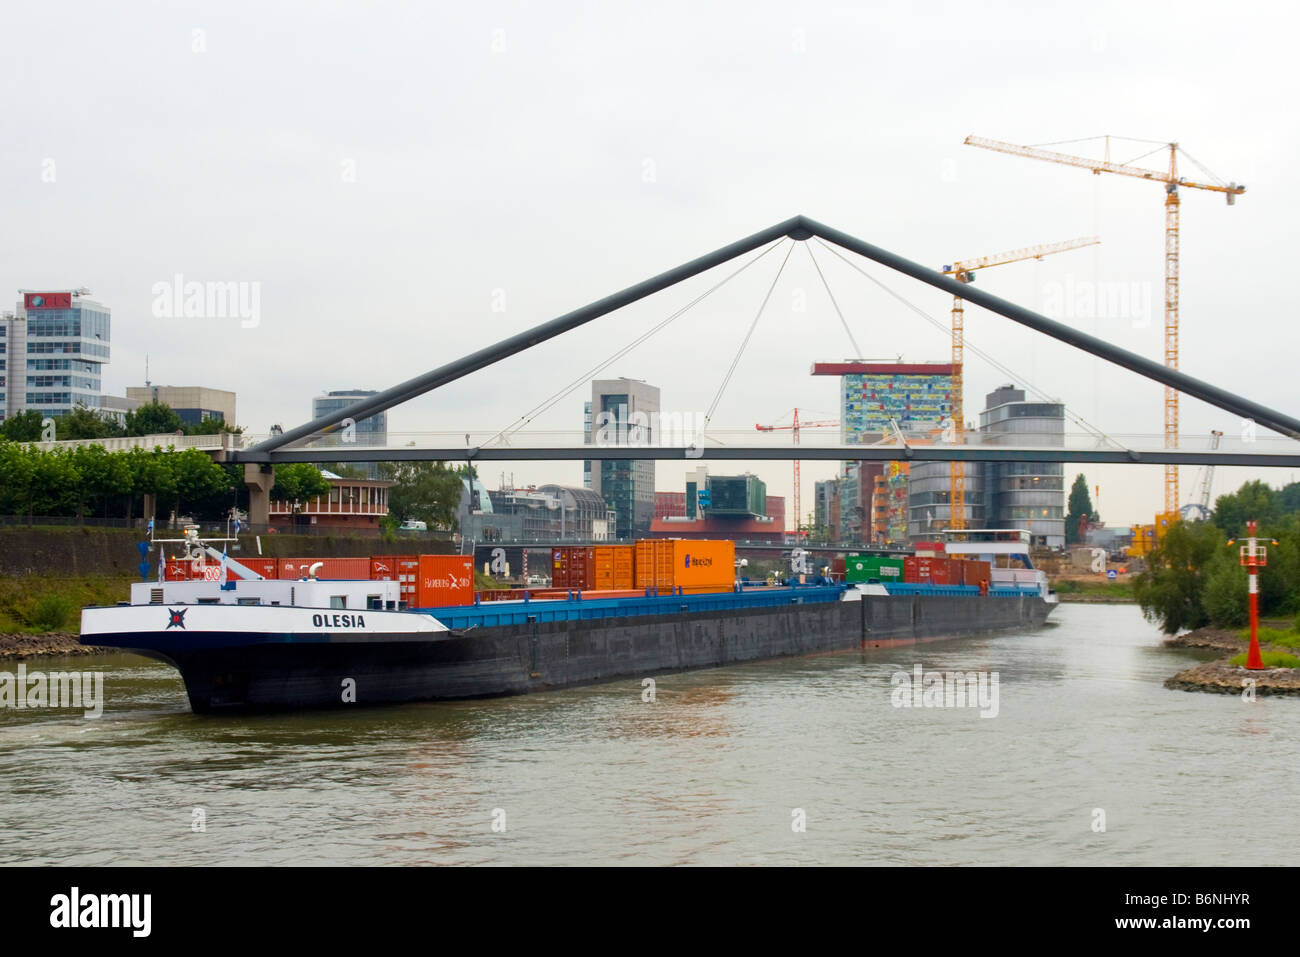 Dusseldorf commercial shipping port on Rhine River - Stock Image